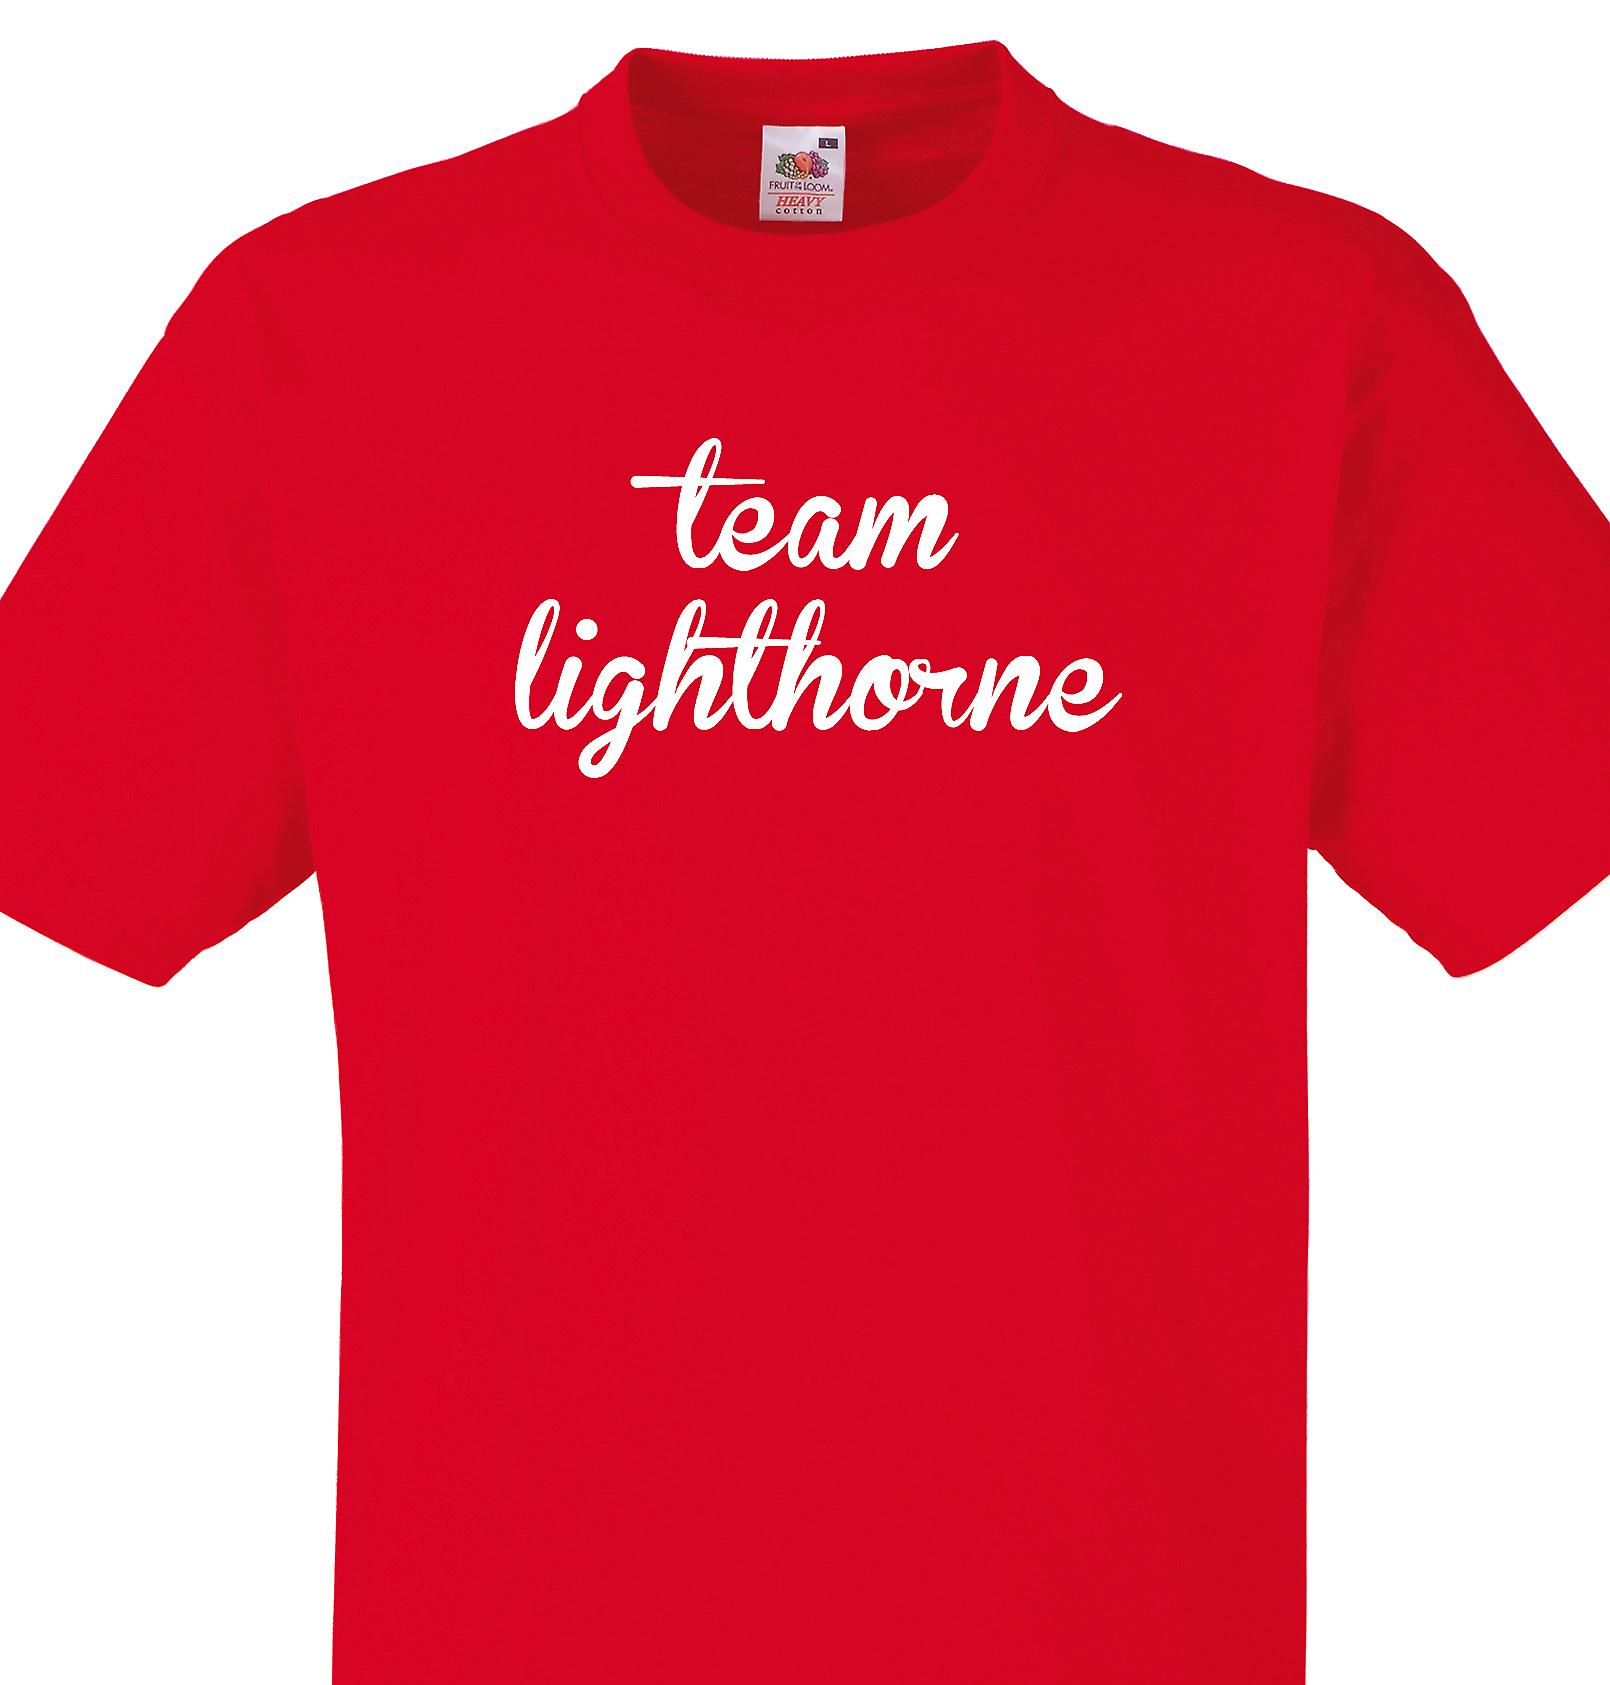 Team Lighthorne Red T shirt